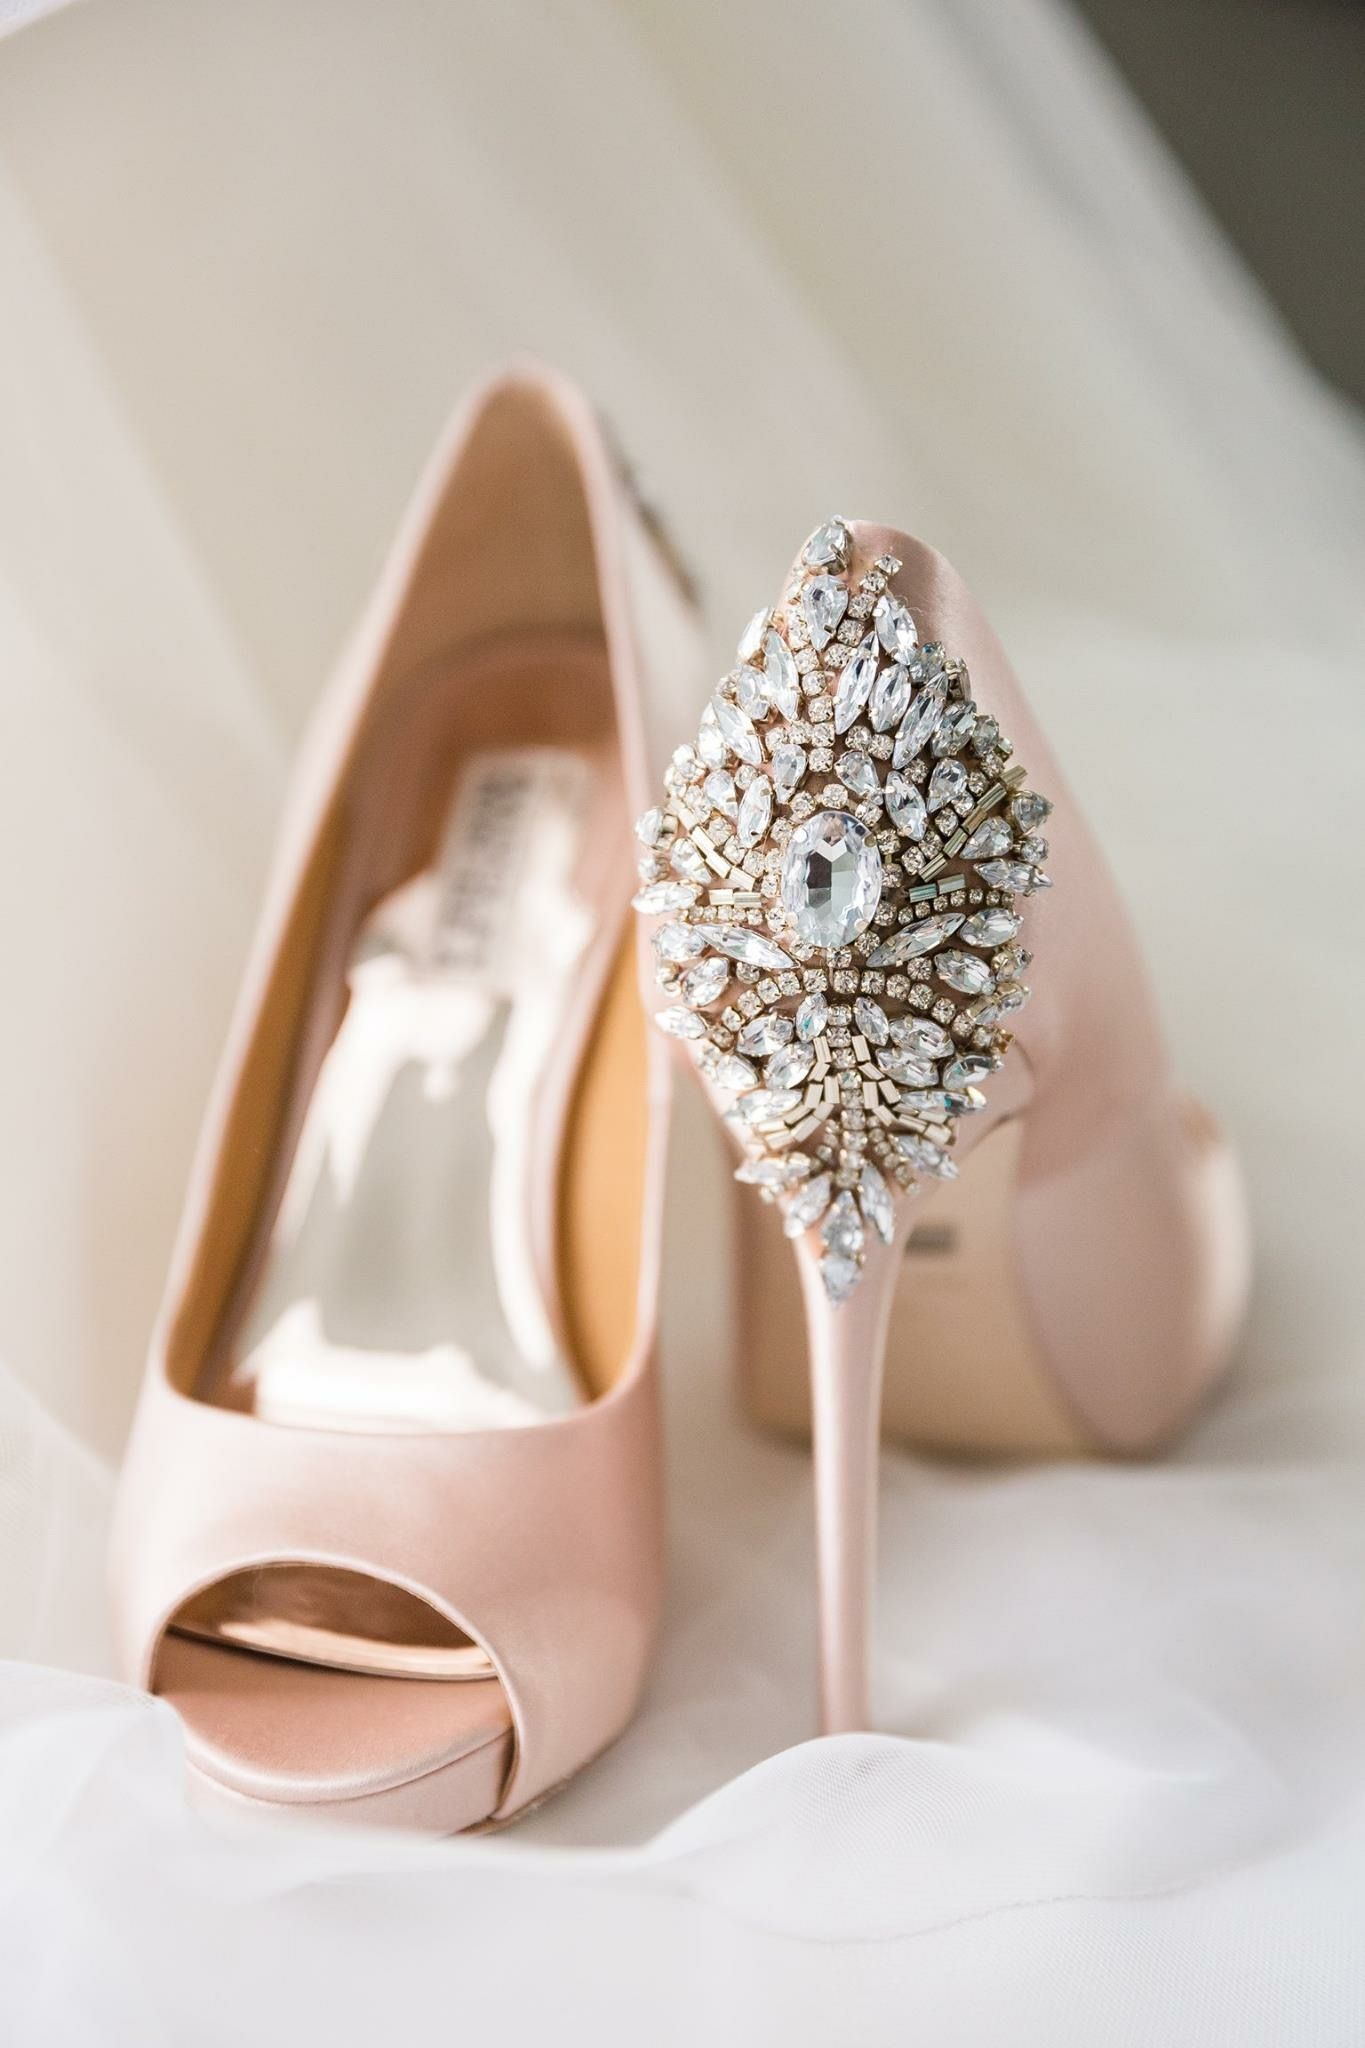 Blush Wedding Shoes Badgley Mischka Shoes Blush Wedding Shoes Wedding Shoes Badgley Mischka Shoes